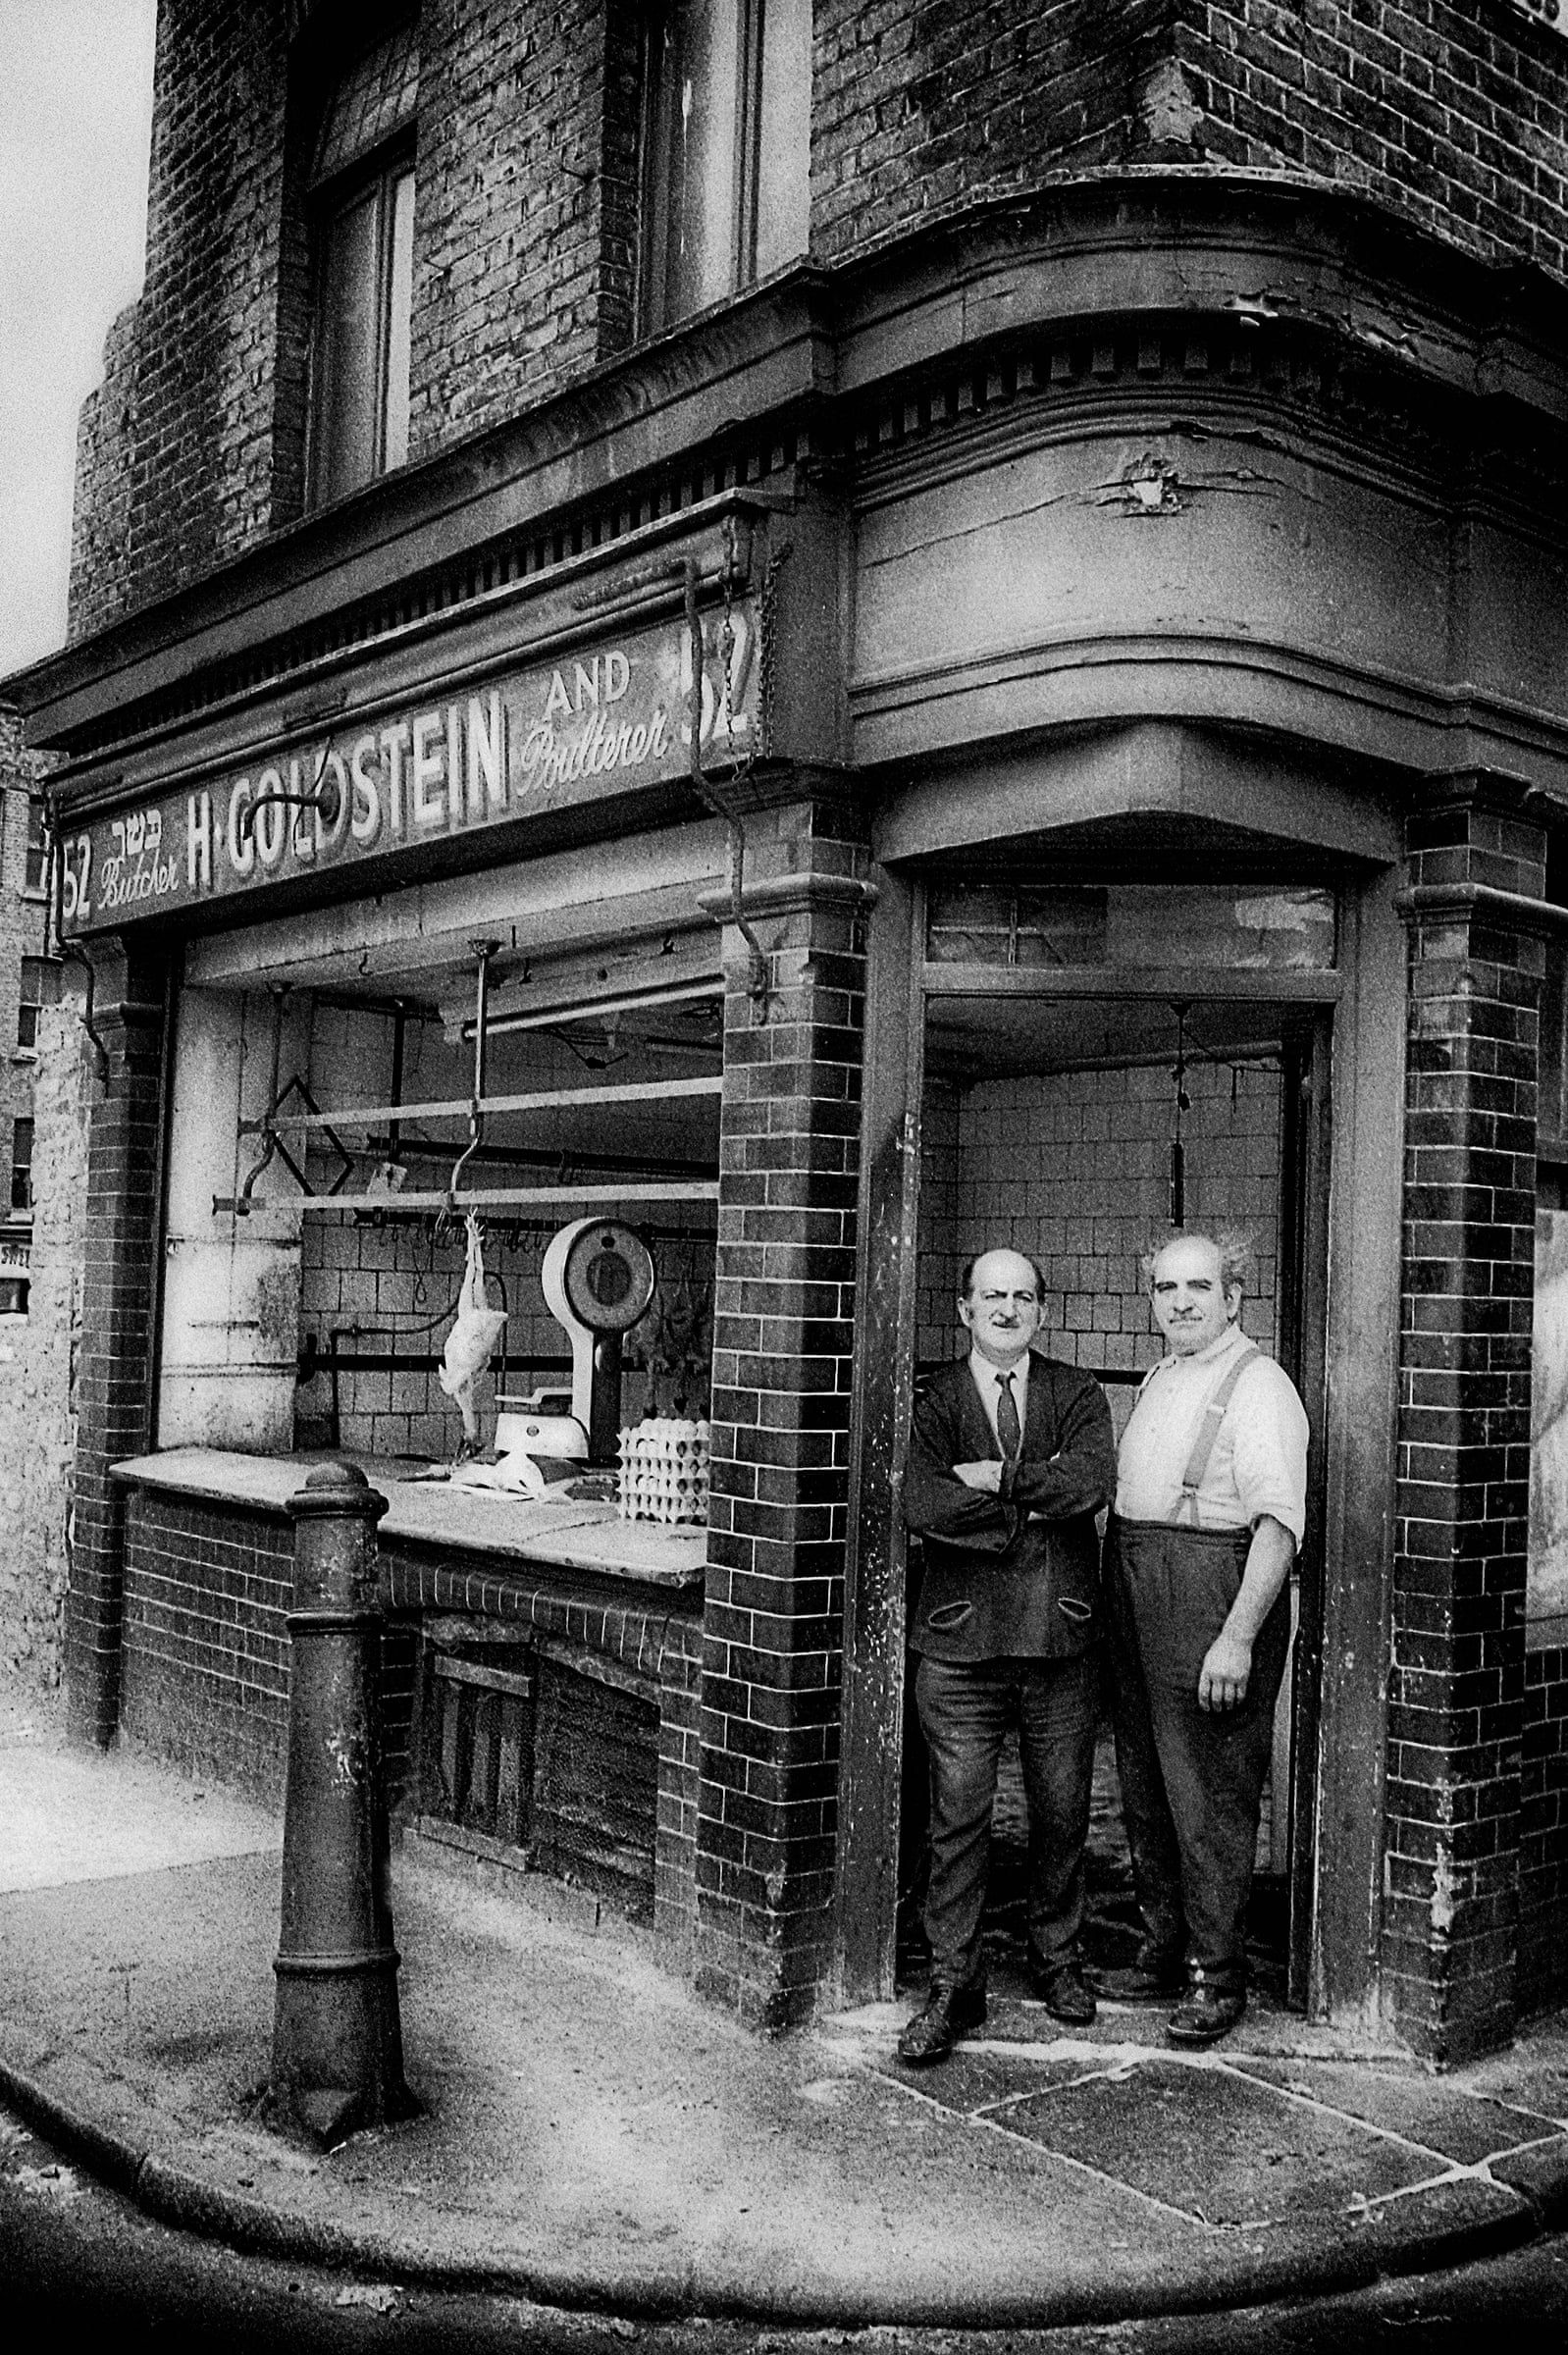 East End London: Corsets And Chickens: The East End In The 1960s